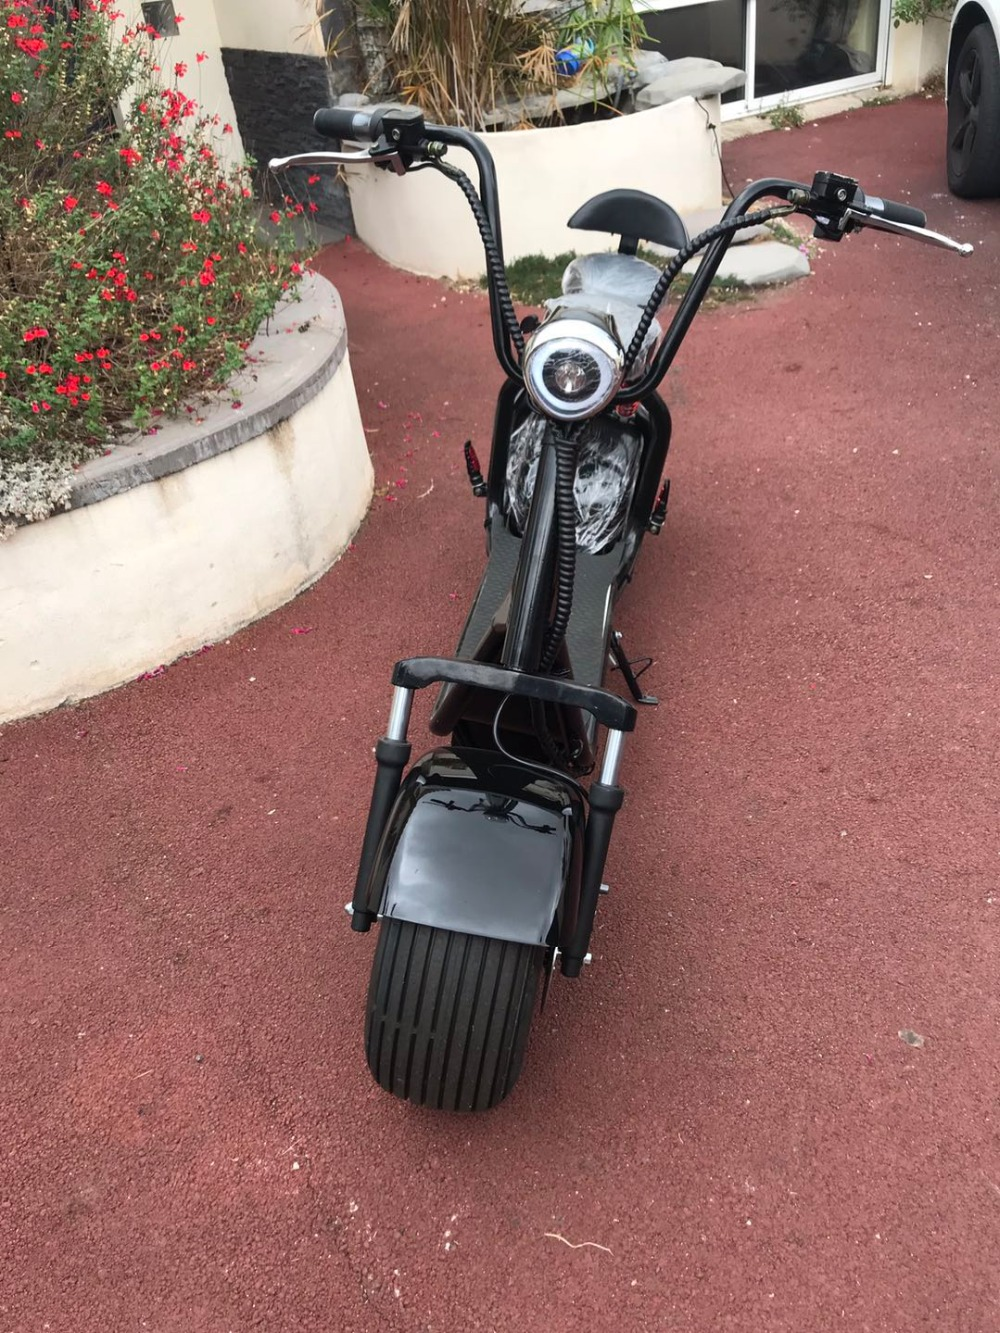 11 11 Big Wheel Electric Scooter Two Wheel 1000W Motor E Scooter Electric Unicycle Motorcycle Self